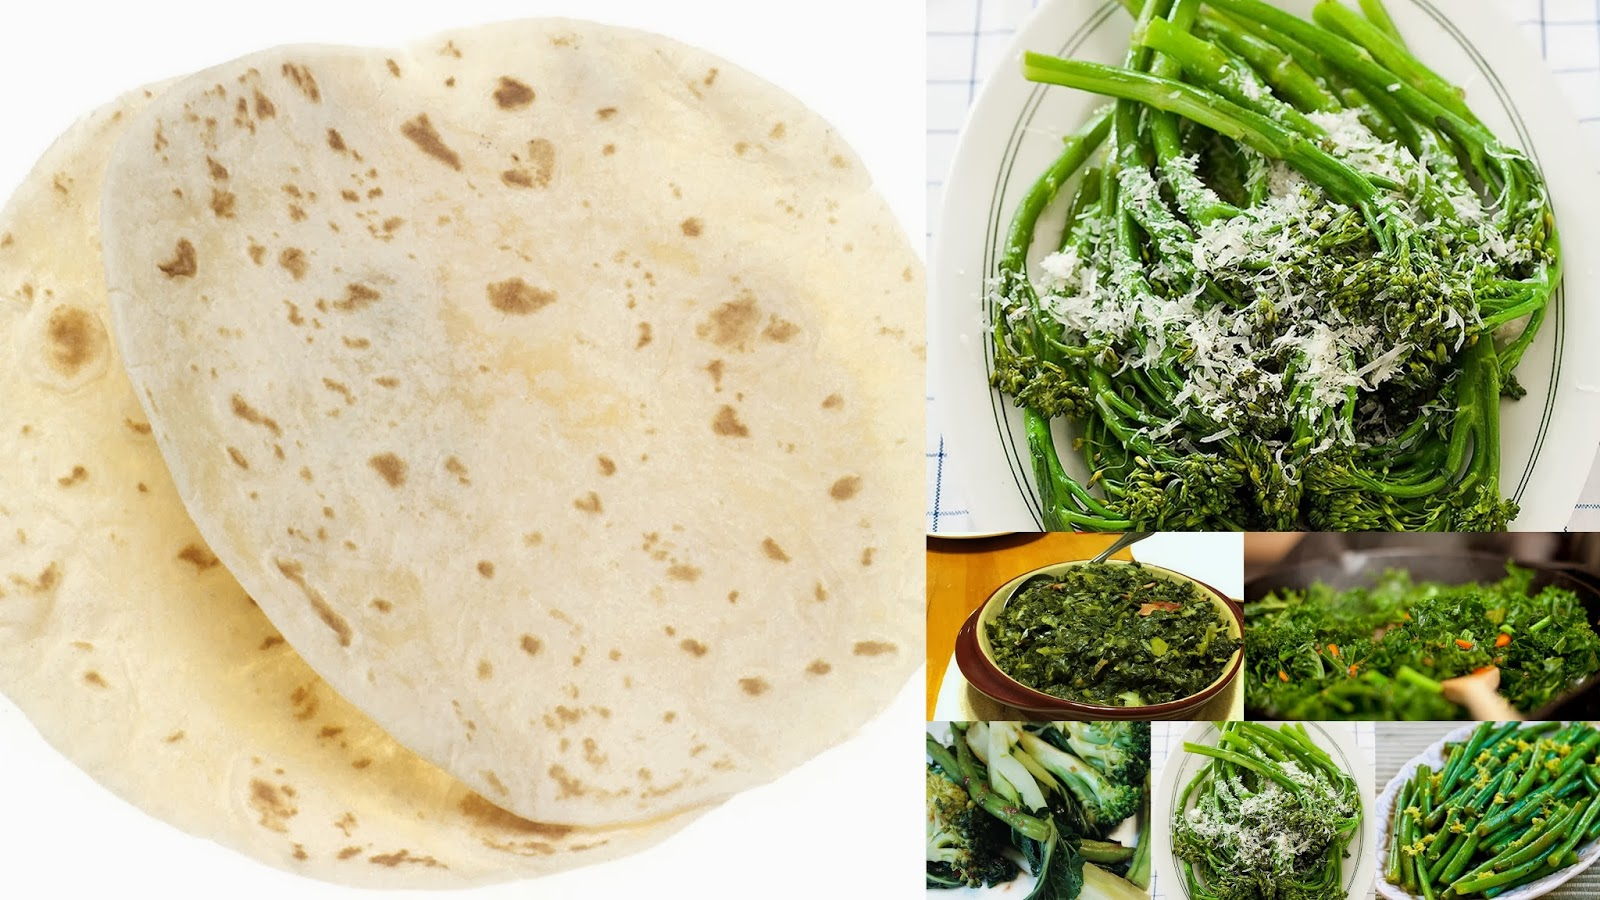 Chapati and green leafy vegetables